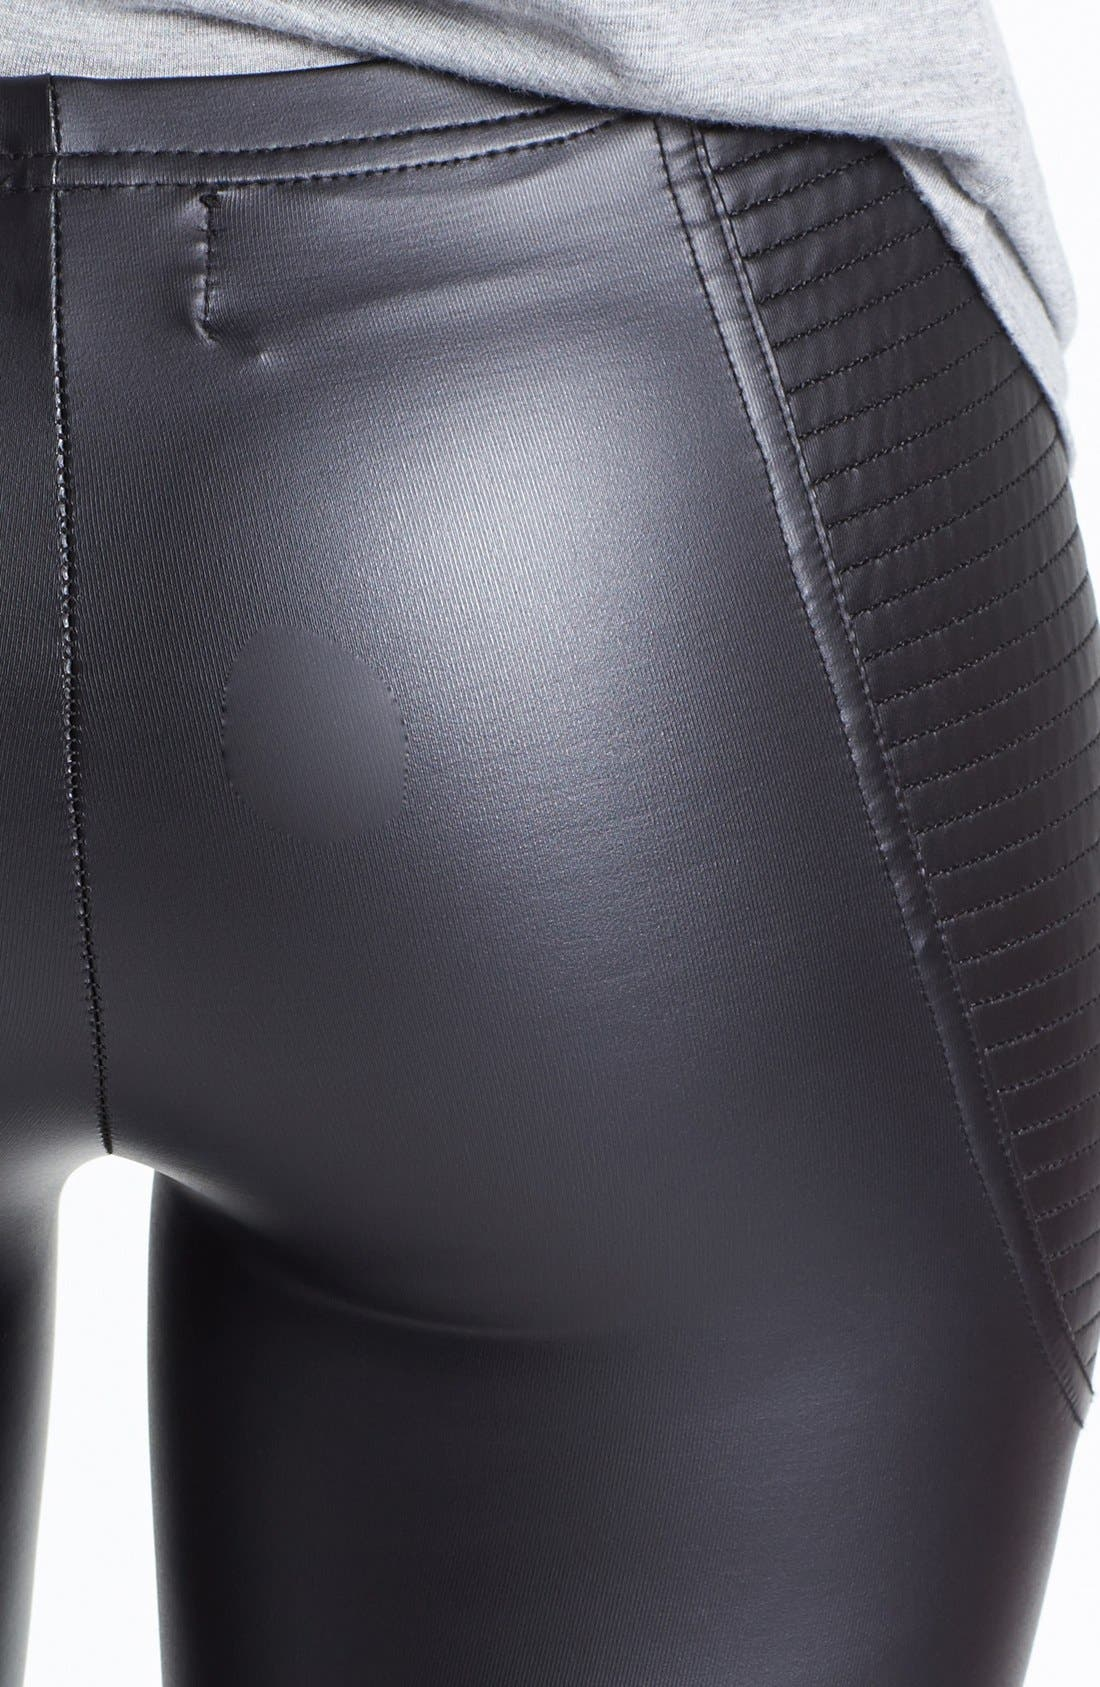 Alternate Image 3  - MINKPINK 'Vroom Vroom' Faux Leather Leggings